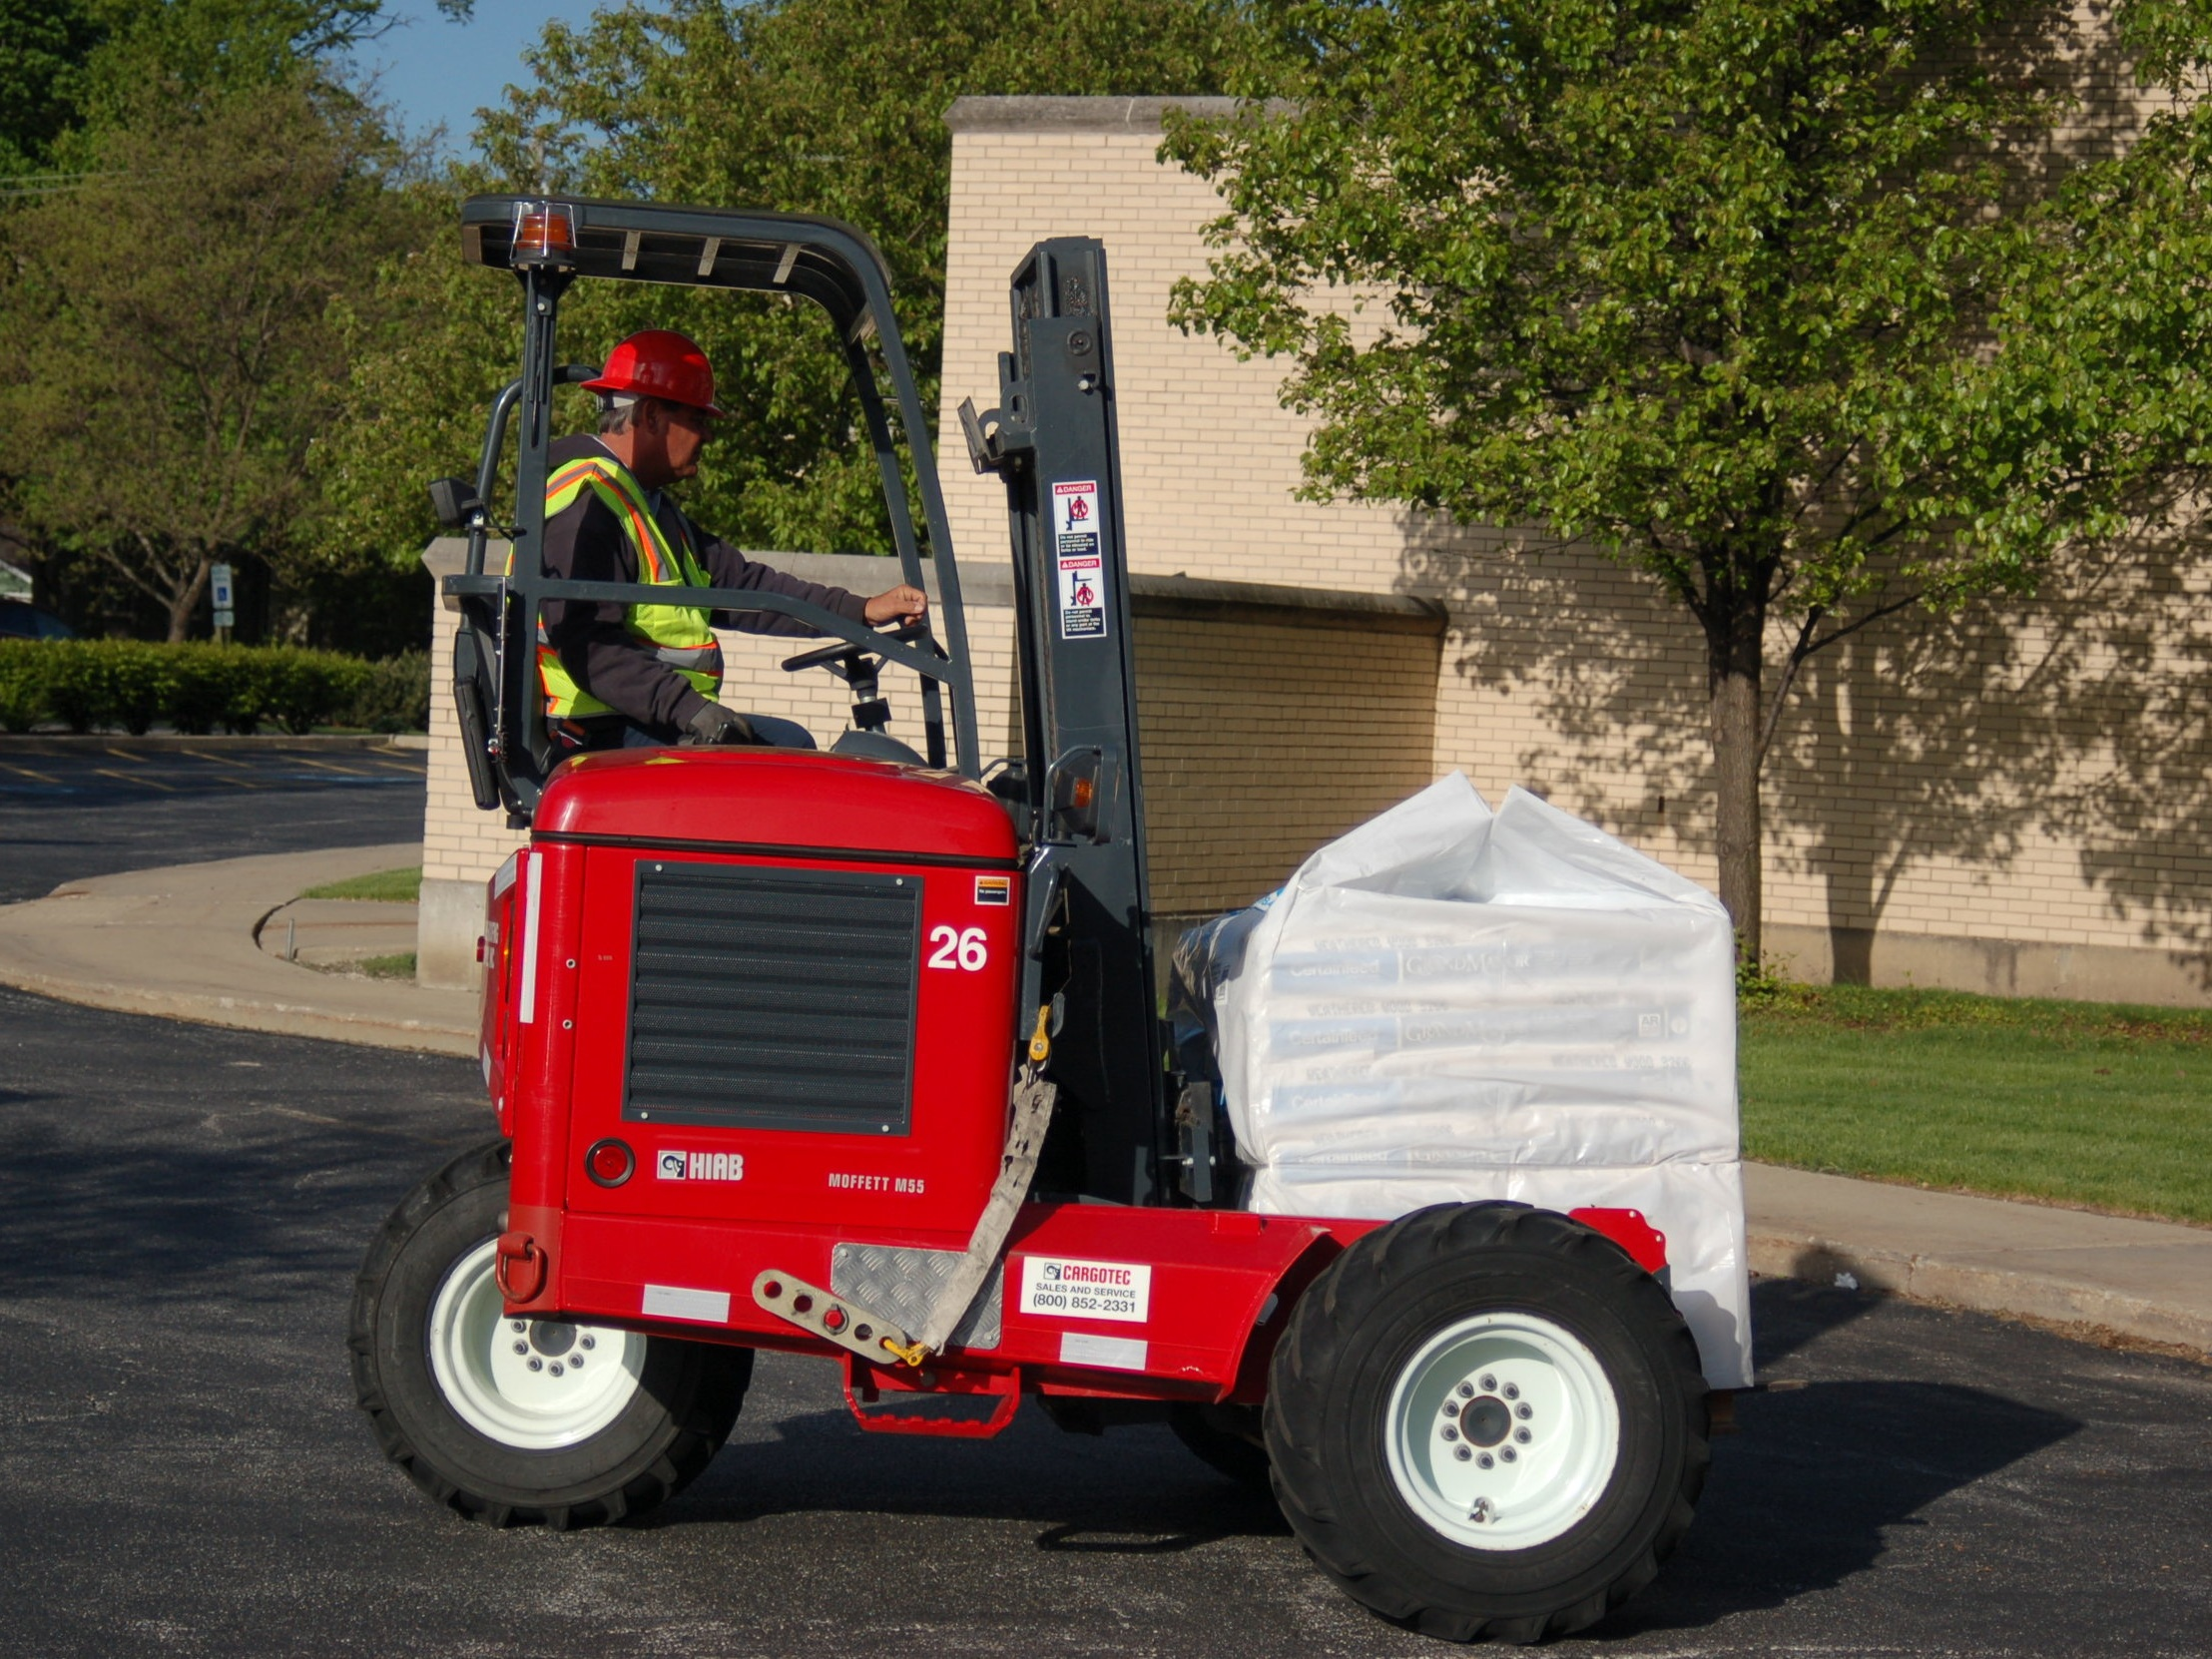 Moffett Delivery - Our truck mounted forklifts (Moffetts) allow our contractors to receive deliveries in the most remote of sites and locations not accessible by many other means. By utilizing a Moffett at the proper locations, material can be brought much closer to the jobsite, saving time and money for our roofers. The Moffett has a lifting capacity of 5500 lbs., all-wheel drive, and the ability to drive across rough terrain.